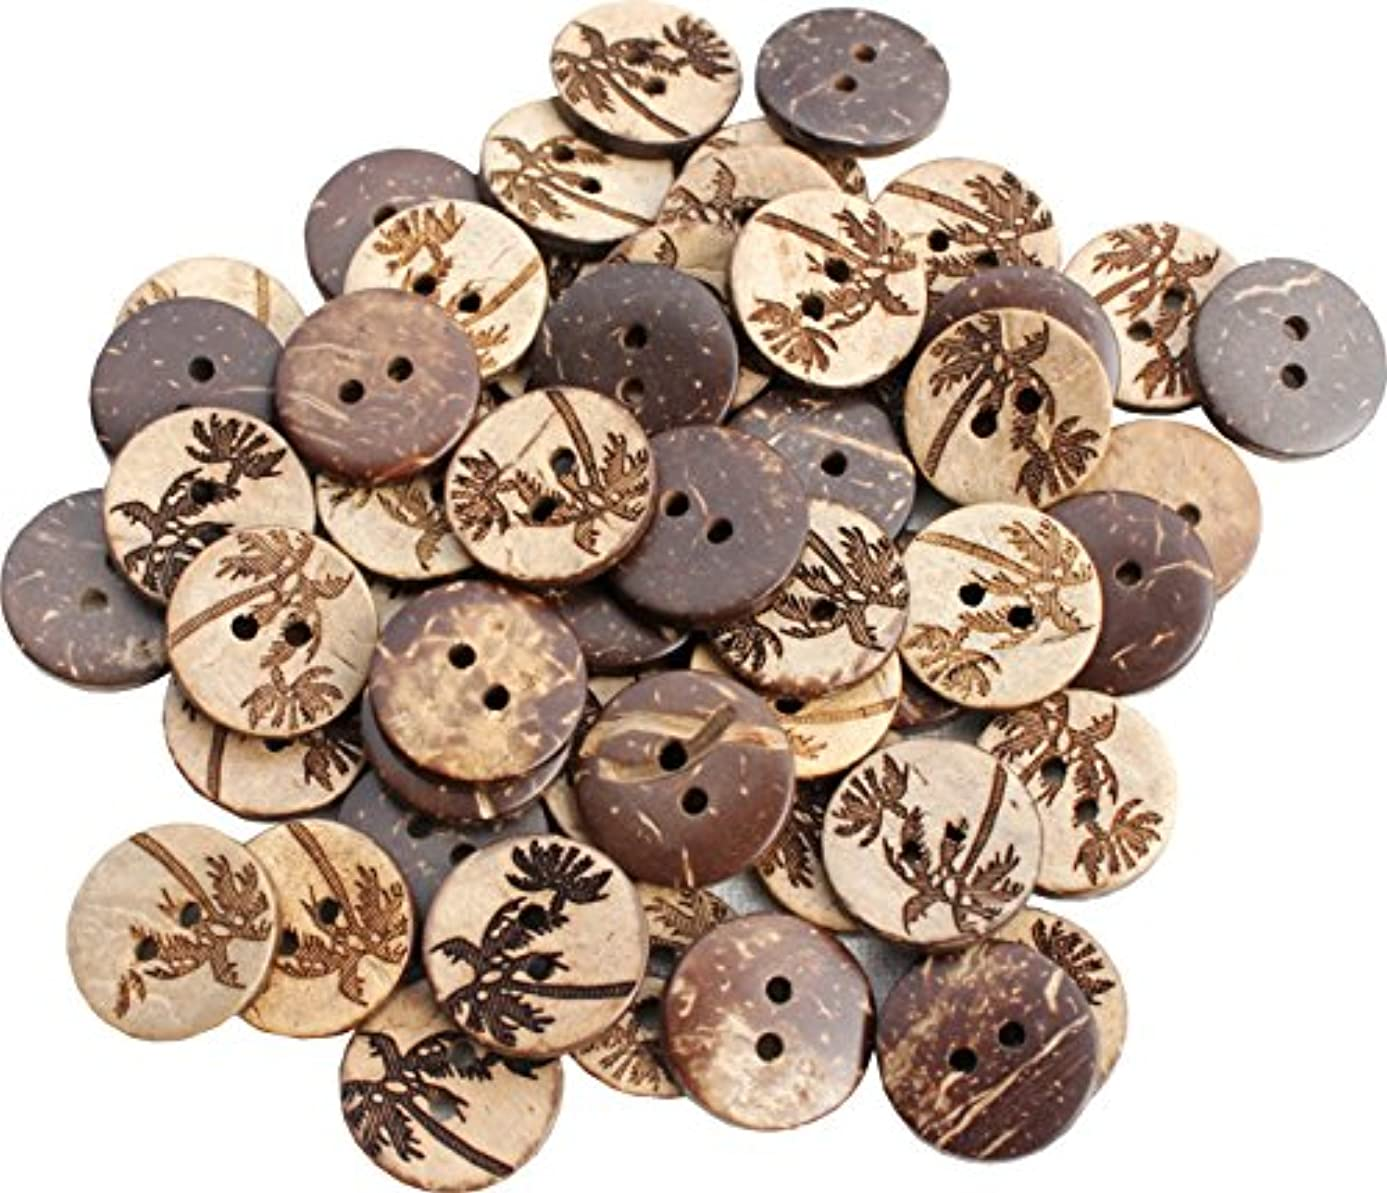 Full Funk Coconut Wood Polished Buttons with Engraved Palmtree Art 1.7cm - 55pcs